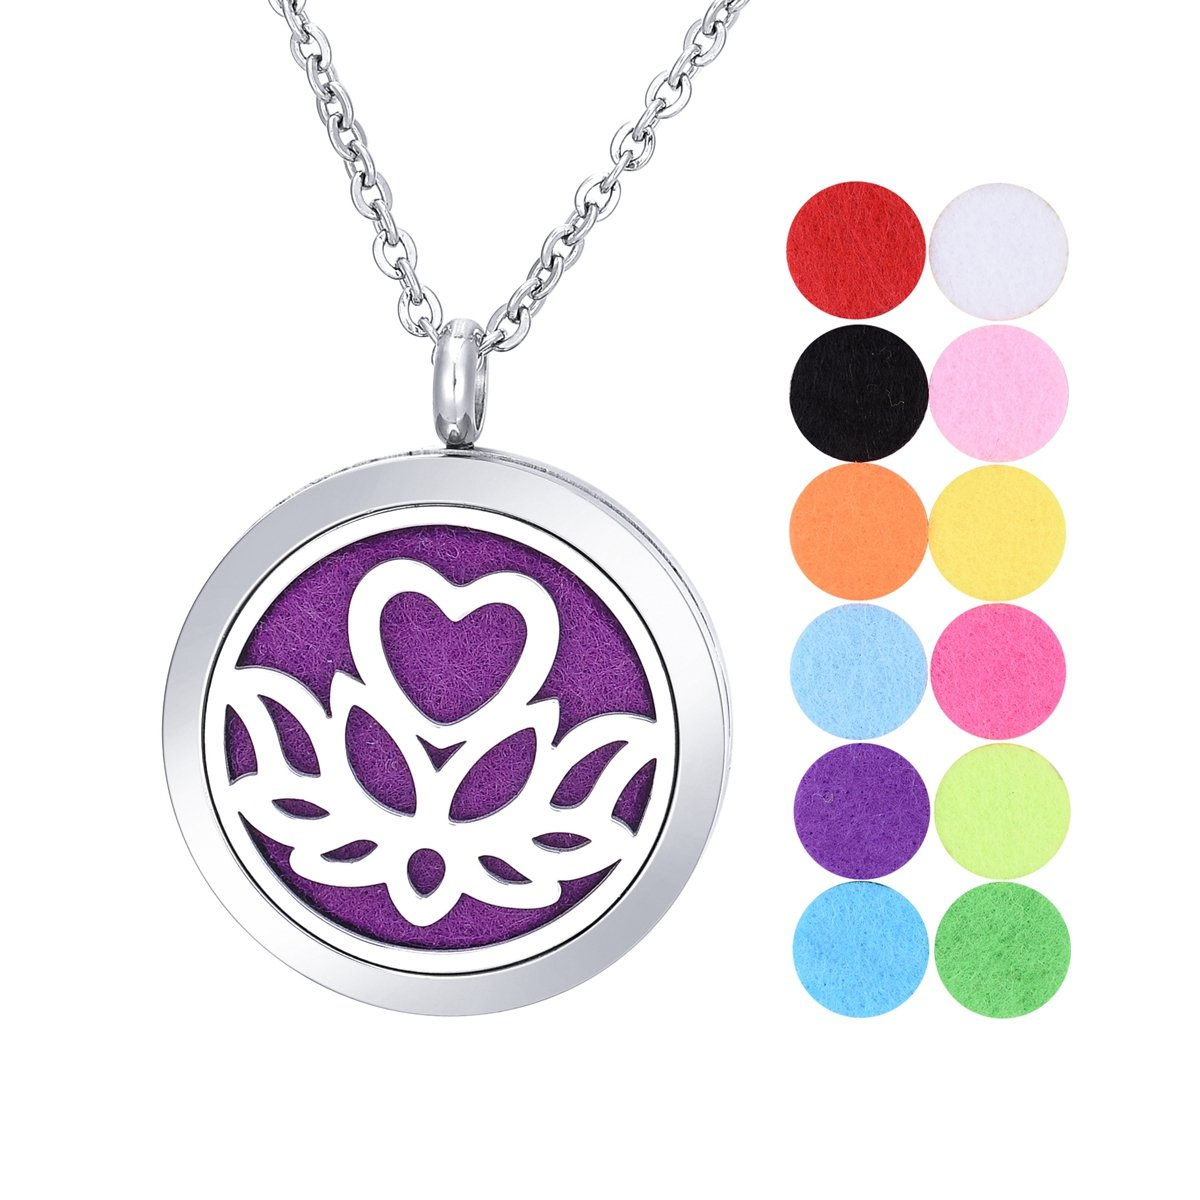 Stainless Steel Aromatherapy Essential Oil Diffuser Necklace with Lotus for Women Gold-plated Supreme glory SGto-B268425